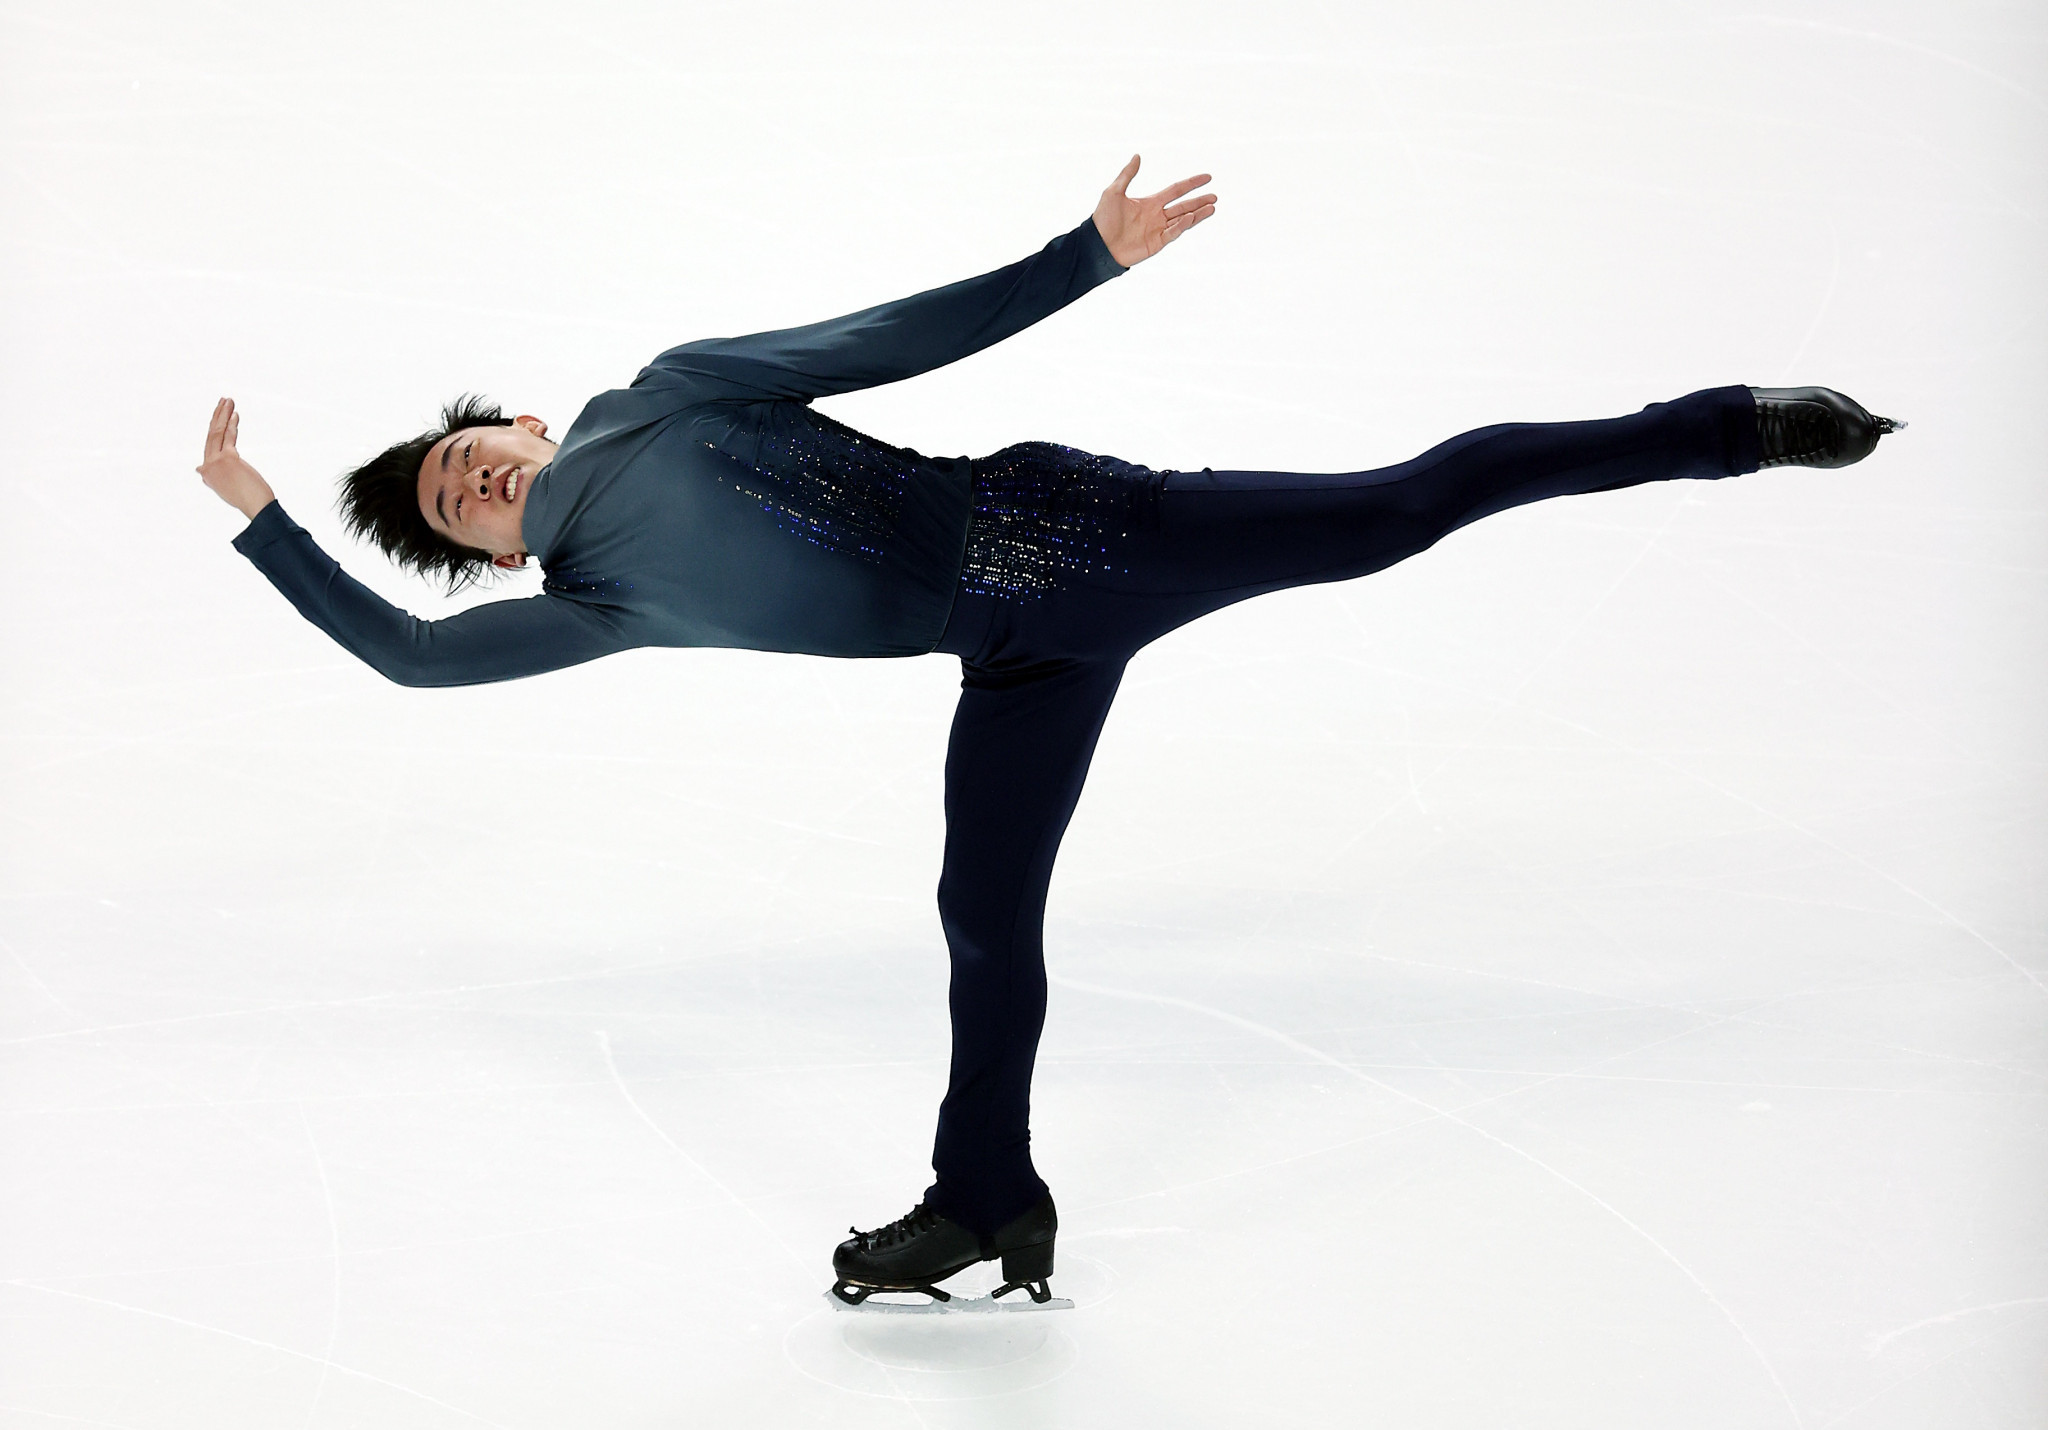 Defending champion Chen stumbles as Zhou takes early lead at Skate America